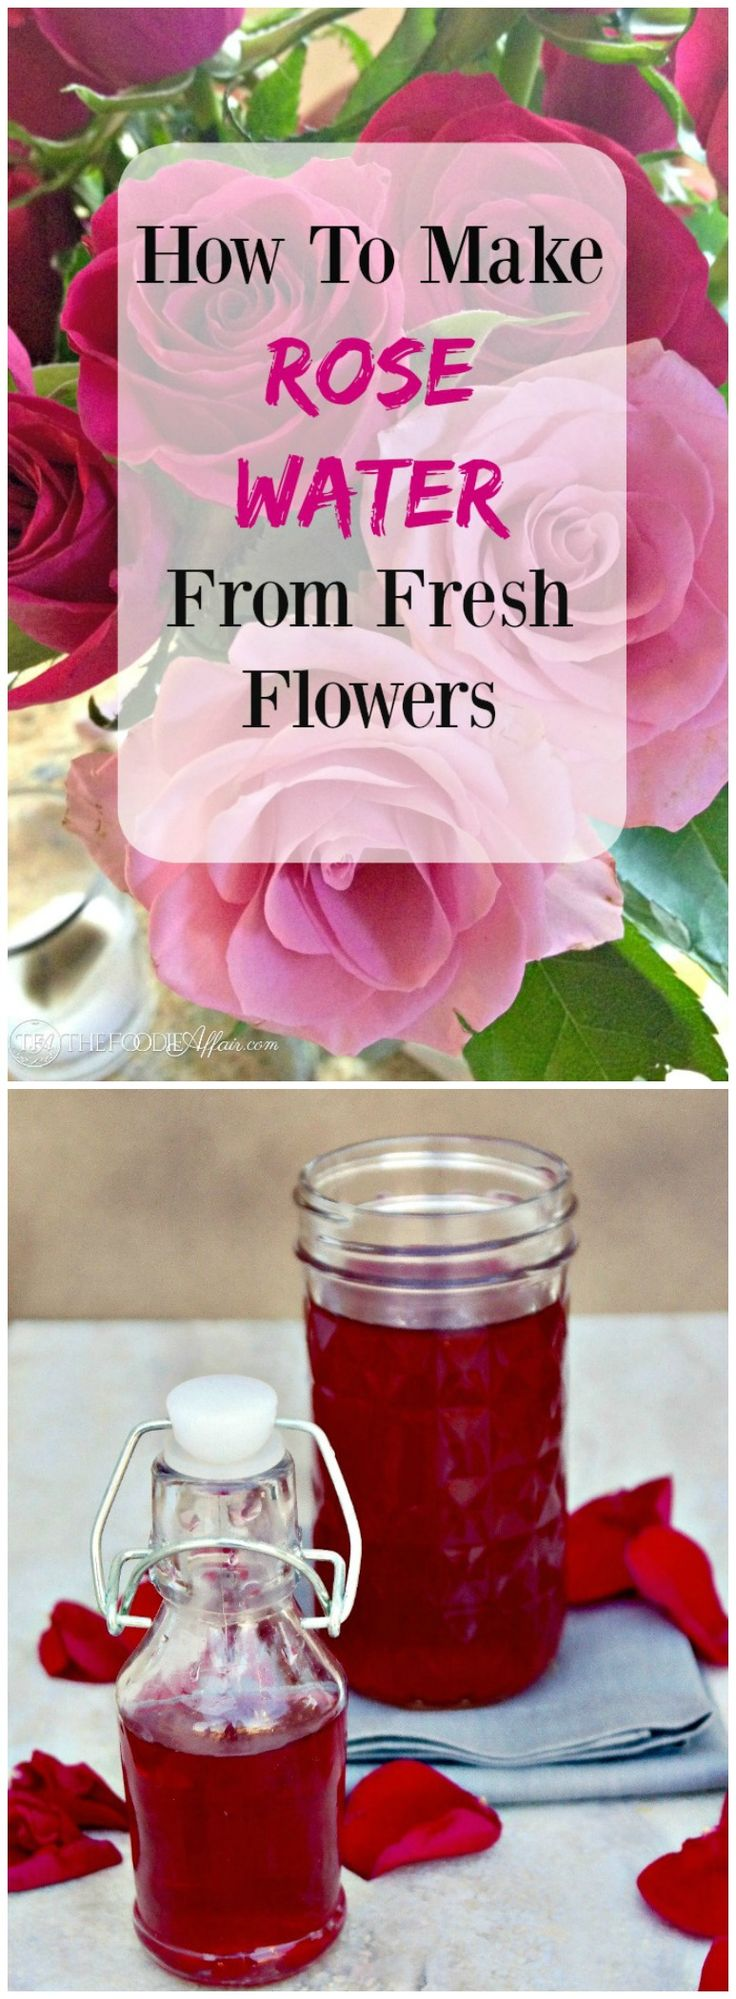 How To Make Rose Water {For Recipes} Using Fresh Flowers is much simpler than you may think! All you need are the flowers and distilled water.